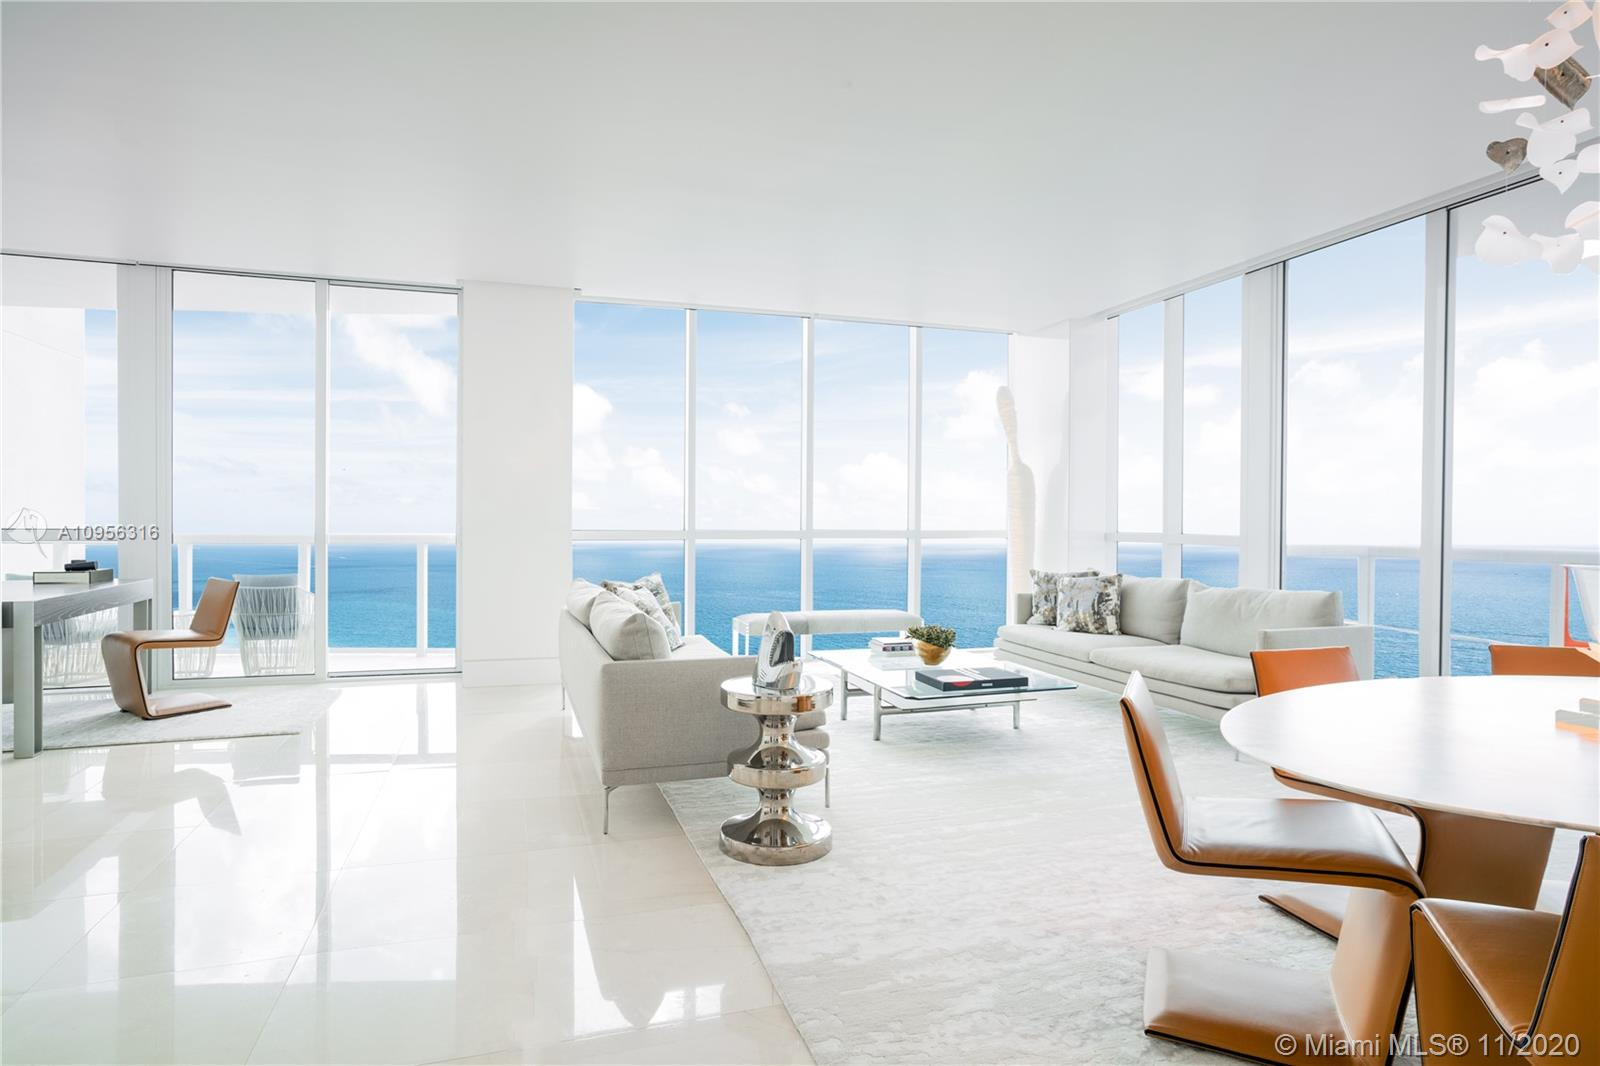 One of the very best residences at Continuum North, 2802 will certainly impress the moment you step in this premium SE corner glass home with 4 terraces! Jaw-dropping views of the Atlantic, parading ships, Fisher Island, Miami skyline & the lush 13acre oasis. Fine upgrades include Ipe wood millwork, custom mirrors & doors, book-matched Calcatta gold marble, floating walls/baseboards / back-lit drop-ceilings, recessed window treatments & custom lighting, all on remotely controlled Savant. Dreamy master features his/hers walk-ins, redesigned spa bath retreat and oceanfront private terrace. Beach club, 3 Har-Tru tennis courts, restaurant, biometric entry, 18K SF wellness center, olympic pool, yoga/pilates/spinning/full service salon/spa usher the perfect lifestyle in the best of Miami Beach.